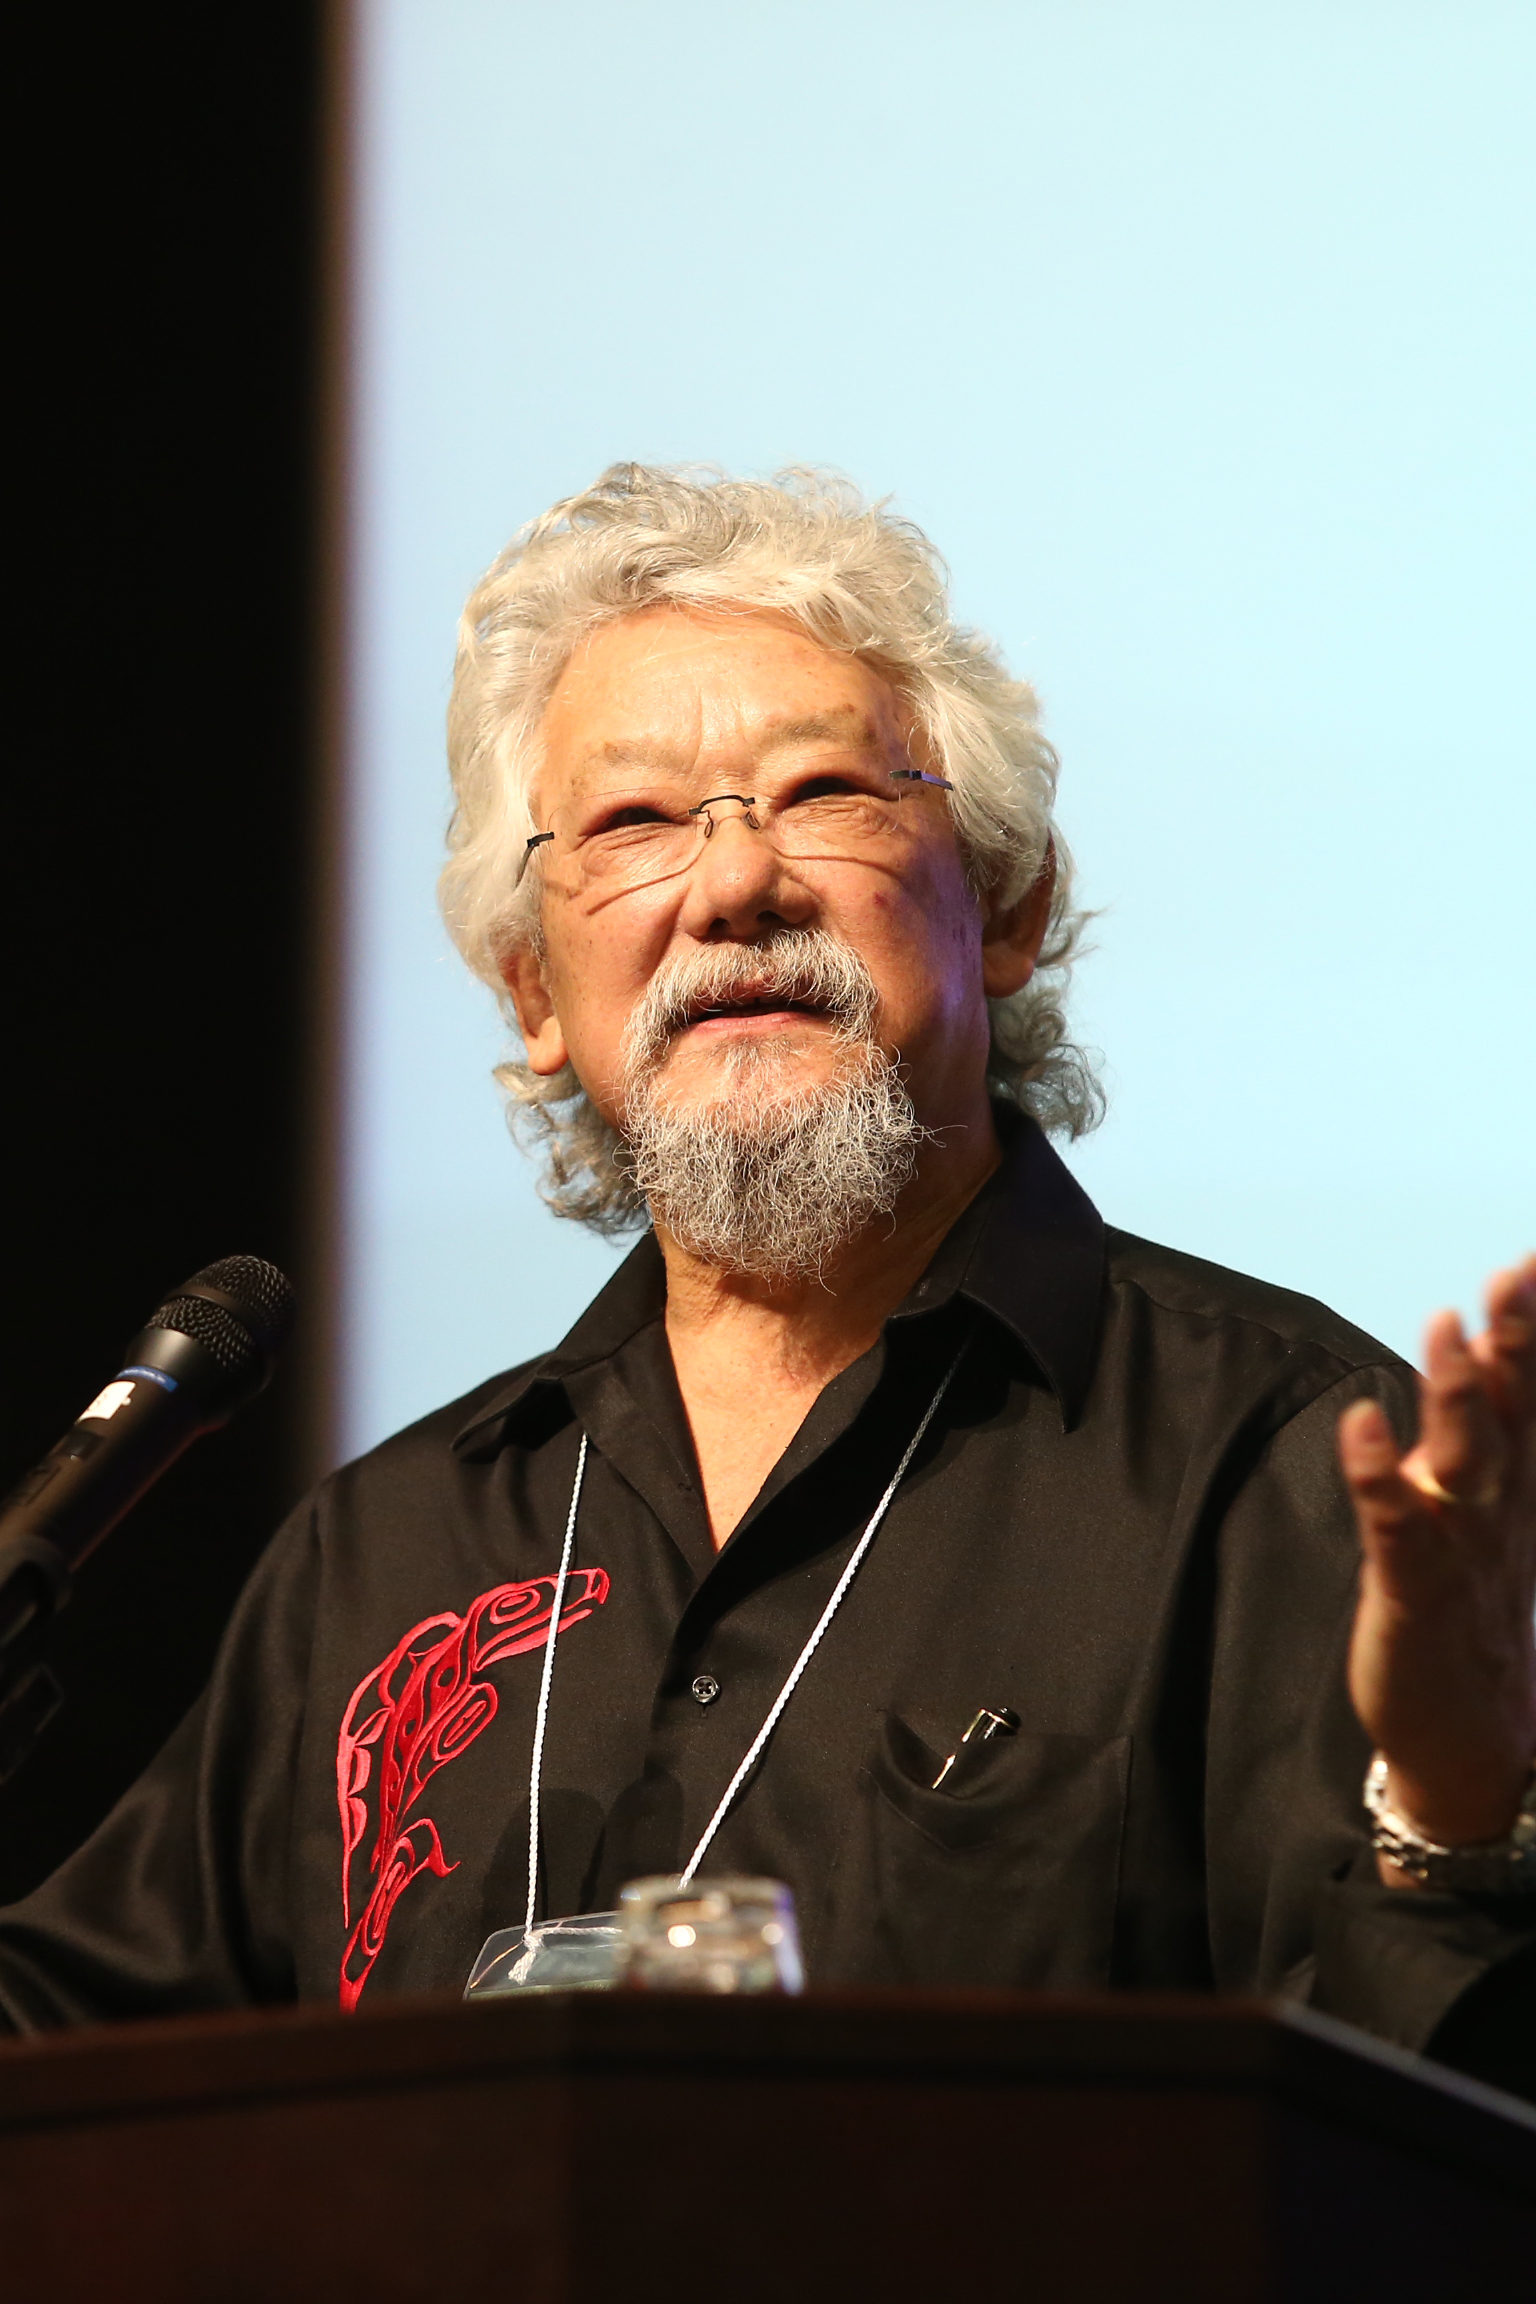 David Suzuki Biography